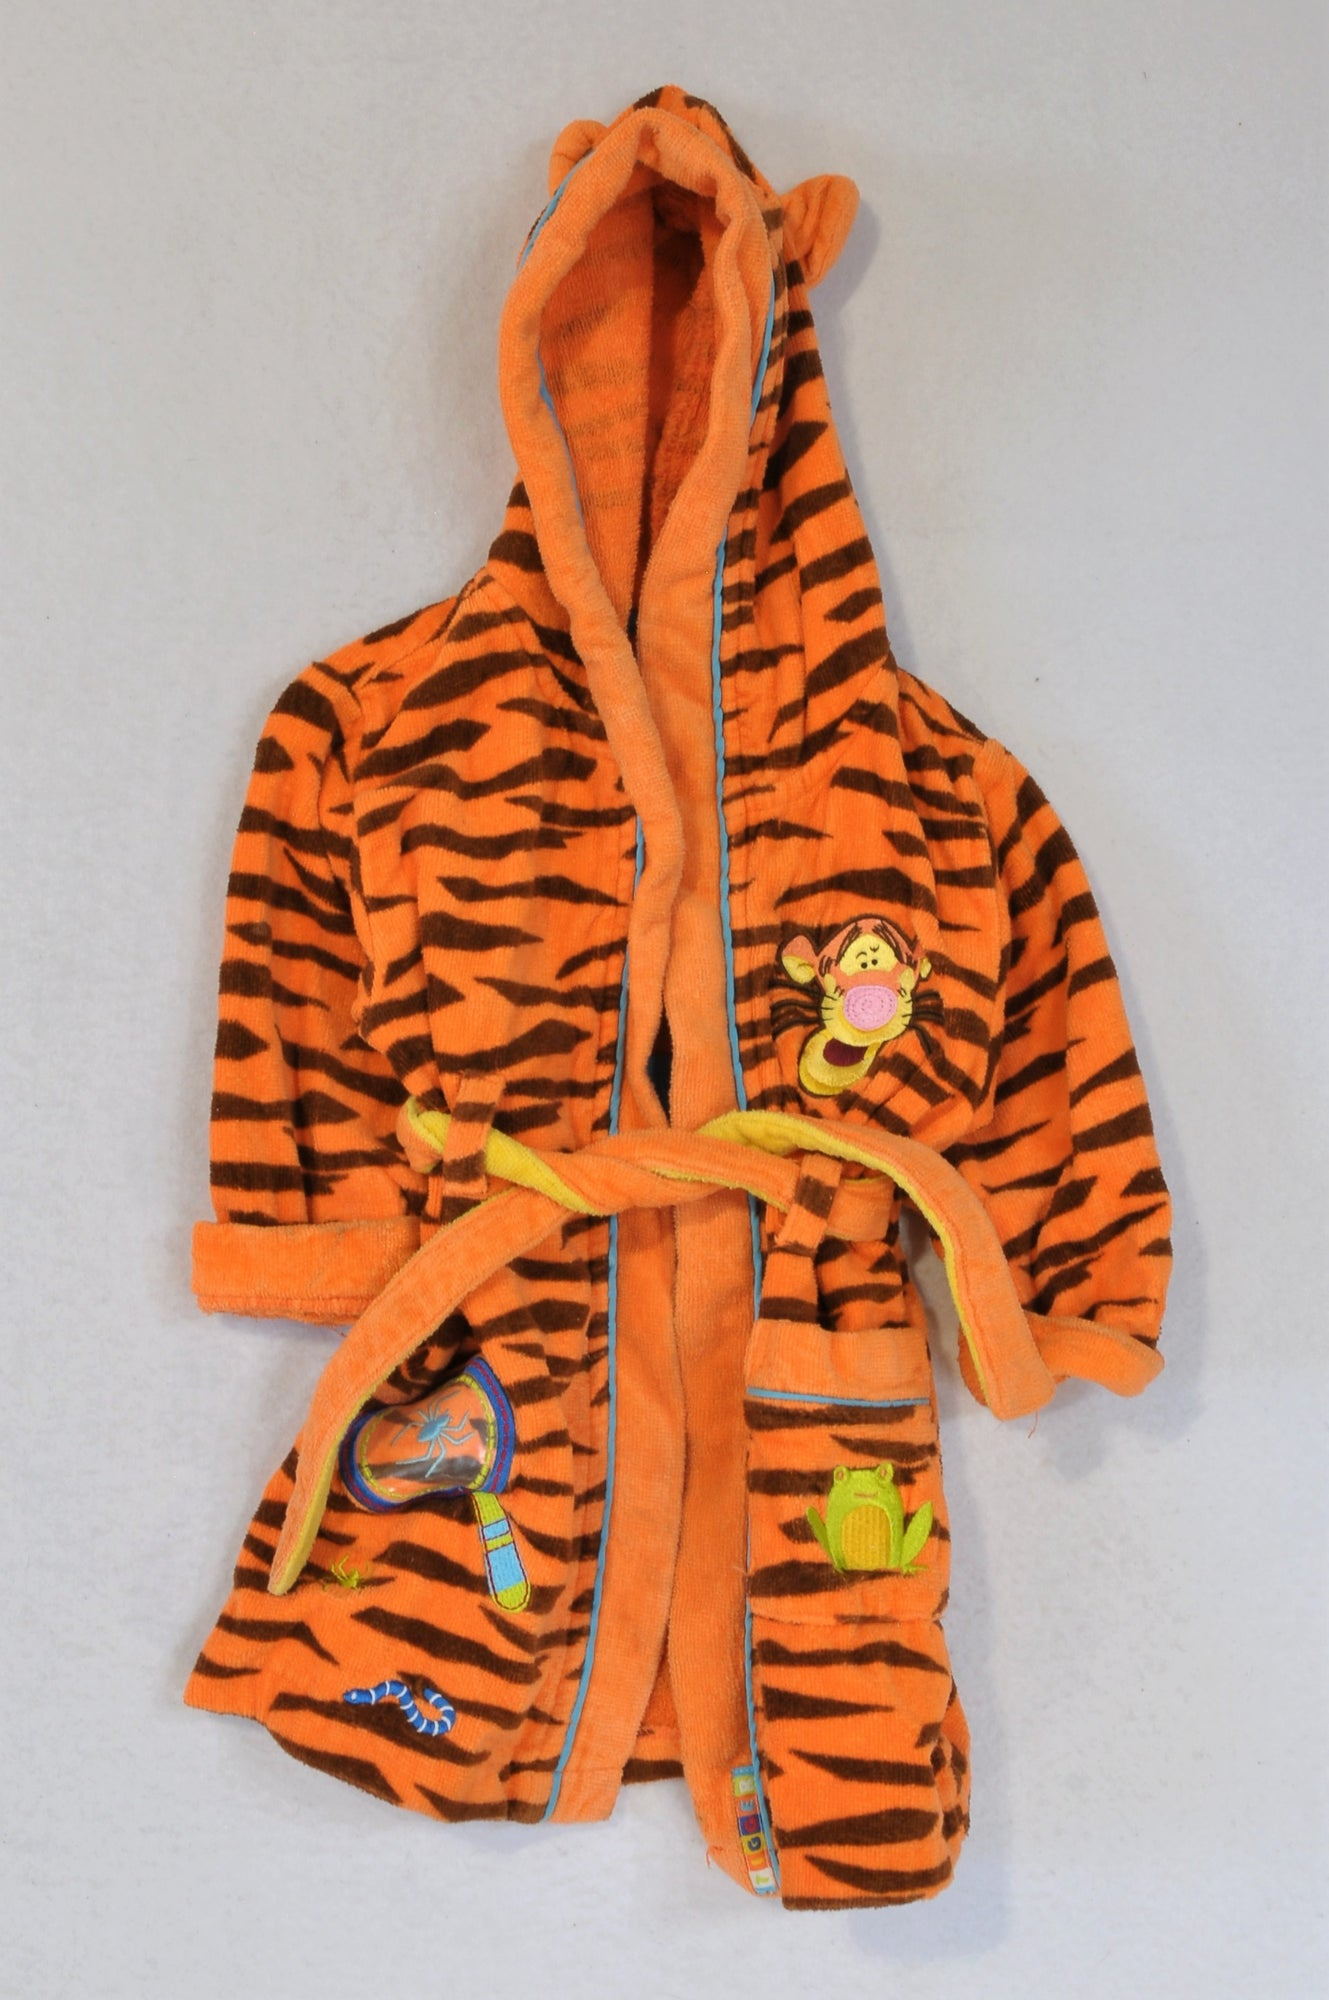 Disney Orange Terry Towel Tigger Dressing Gown Unisex 12-18 months